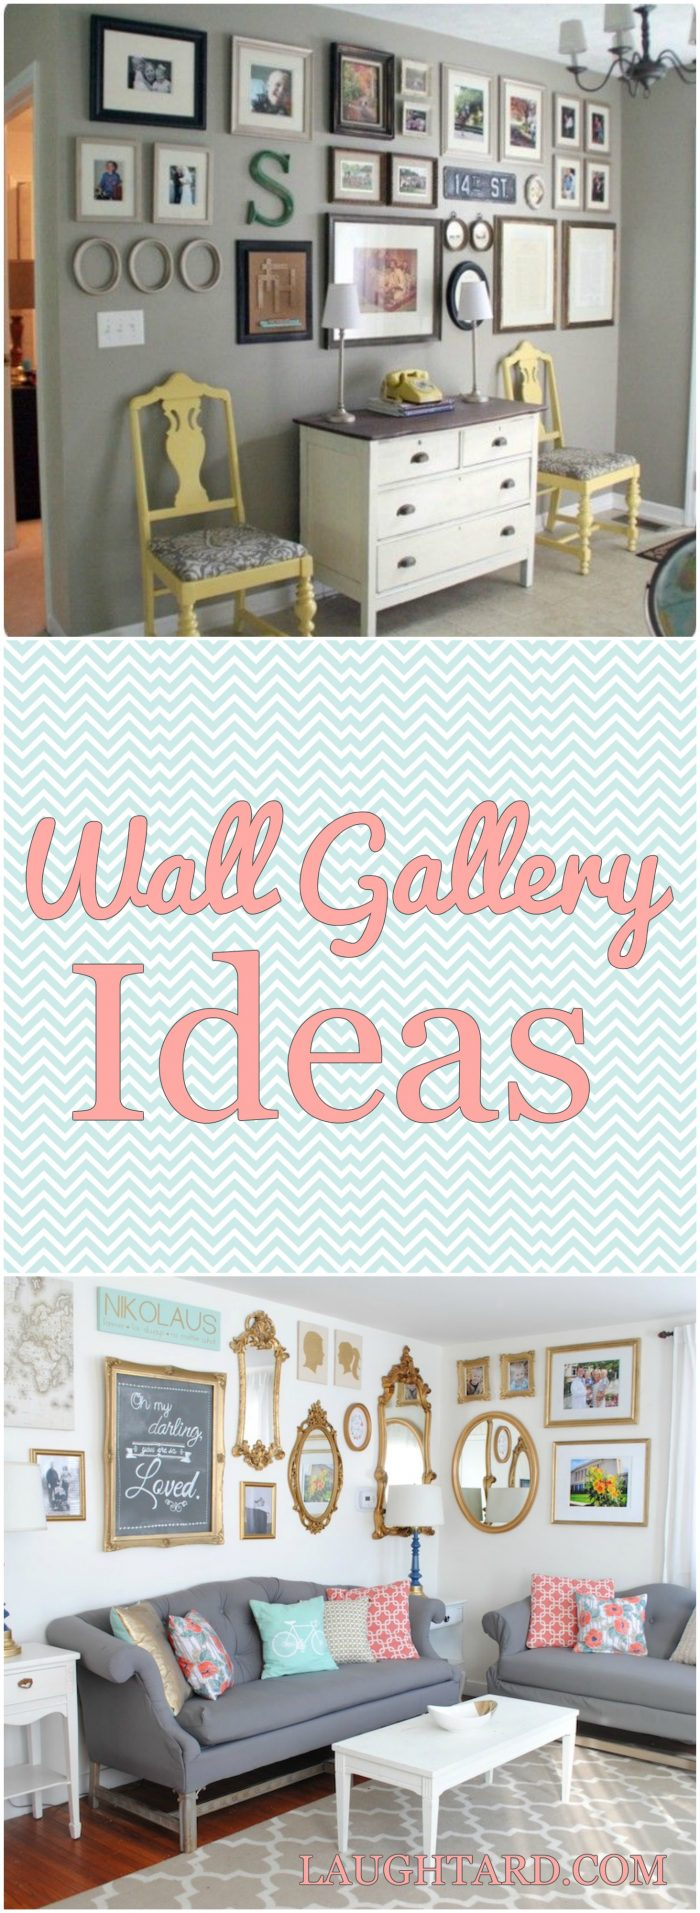 Gallery Wall Ideas You Will Love